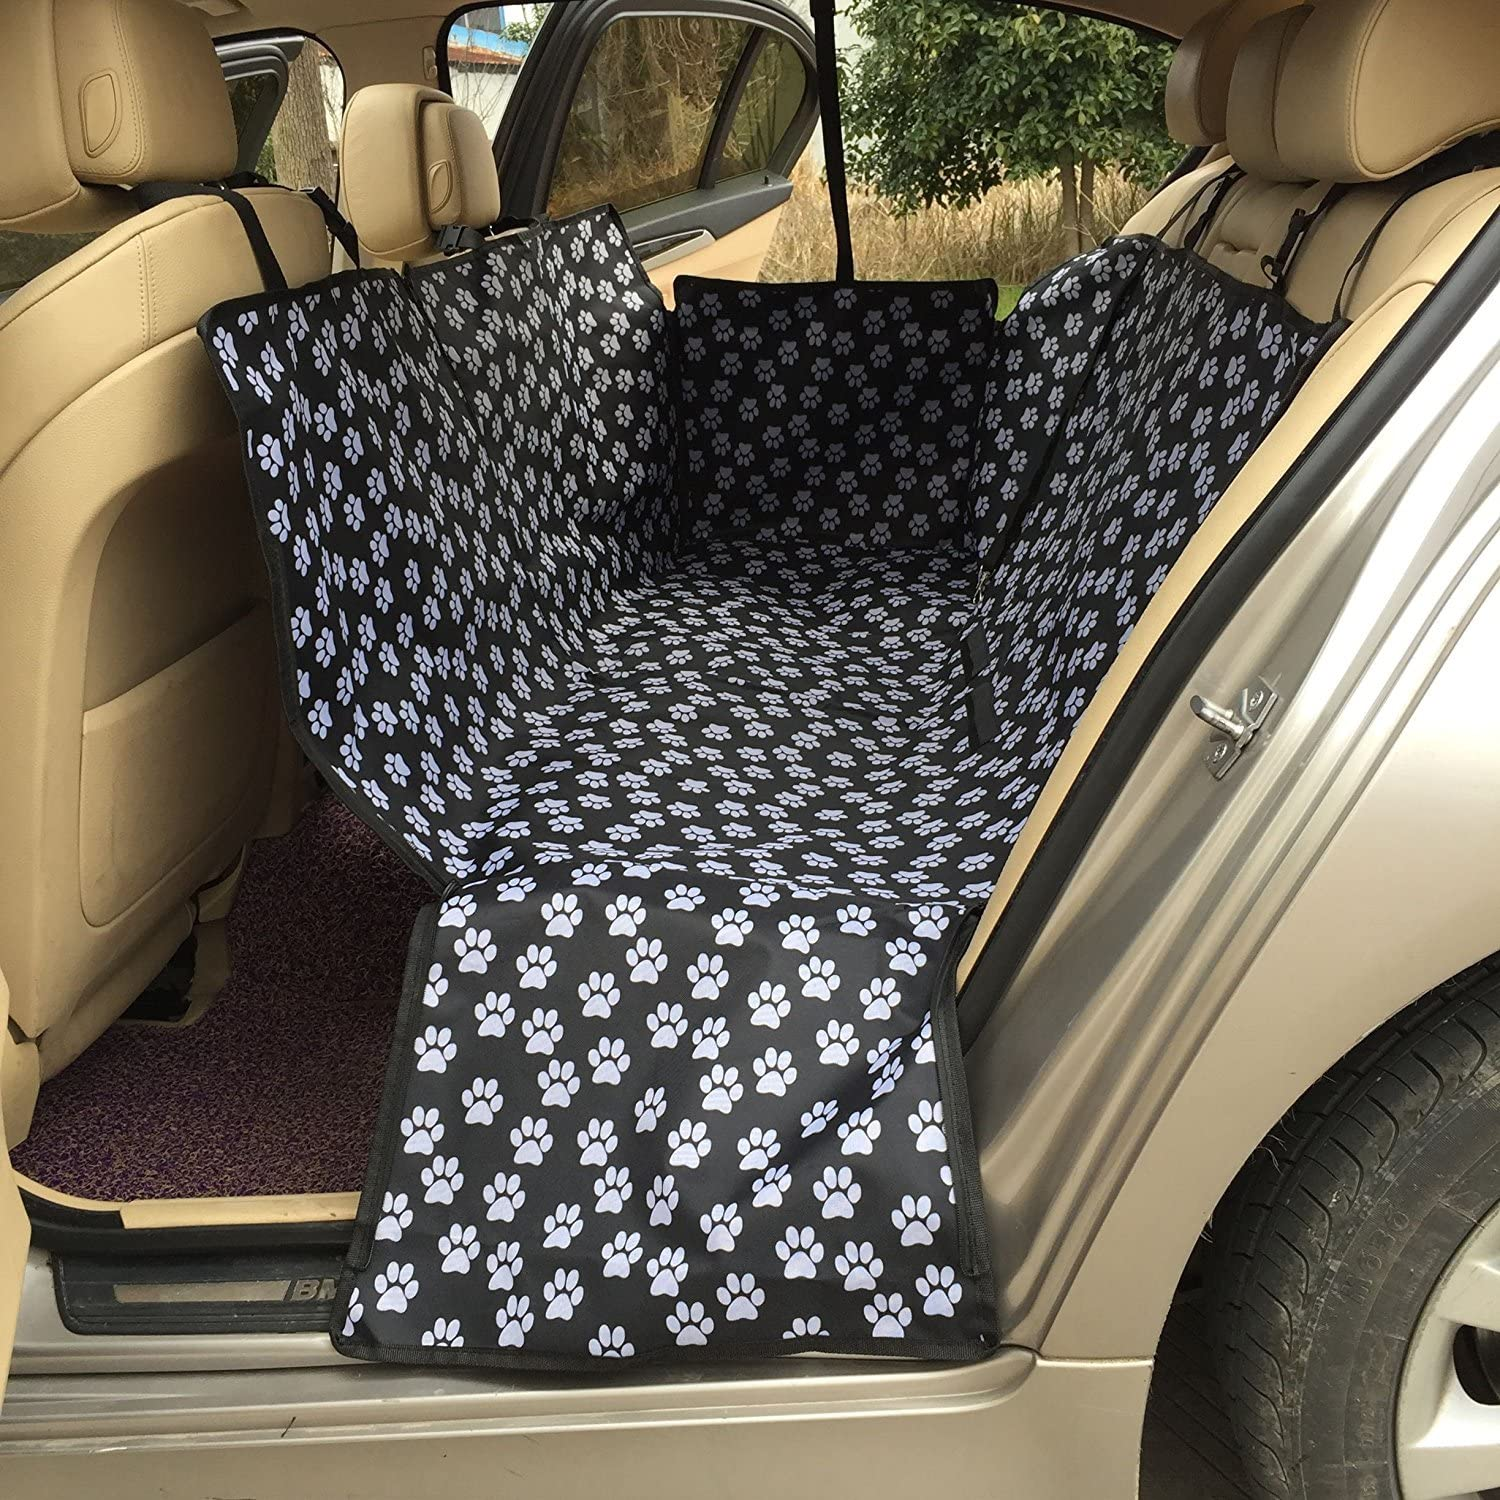 Haocoo Pet Seat Cover, Back Seat Covers for Dogs Cats Waterproof and Slipproof Fits Most Cars, SUV, Vans & Trucks